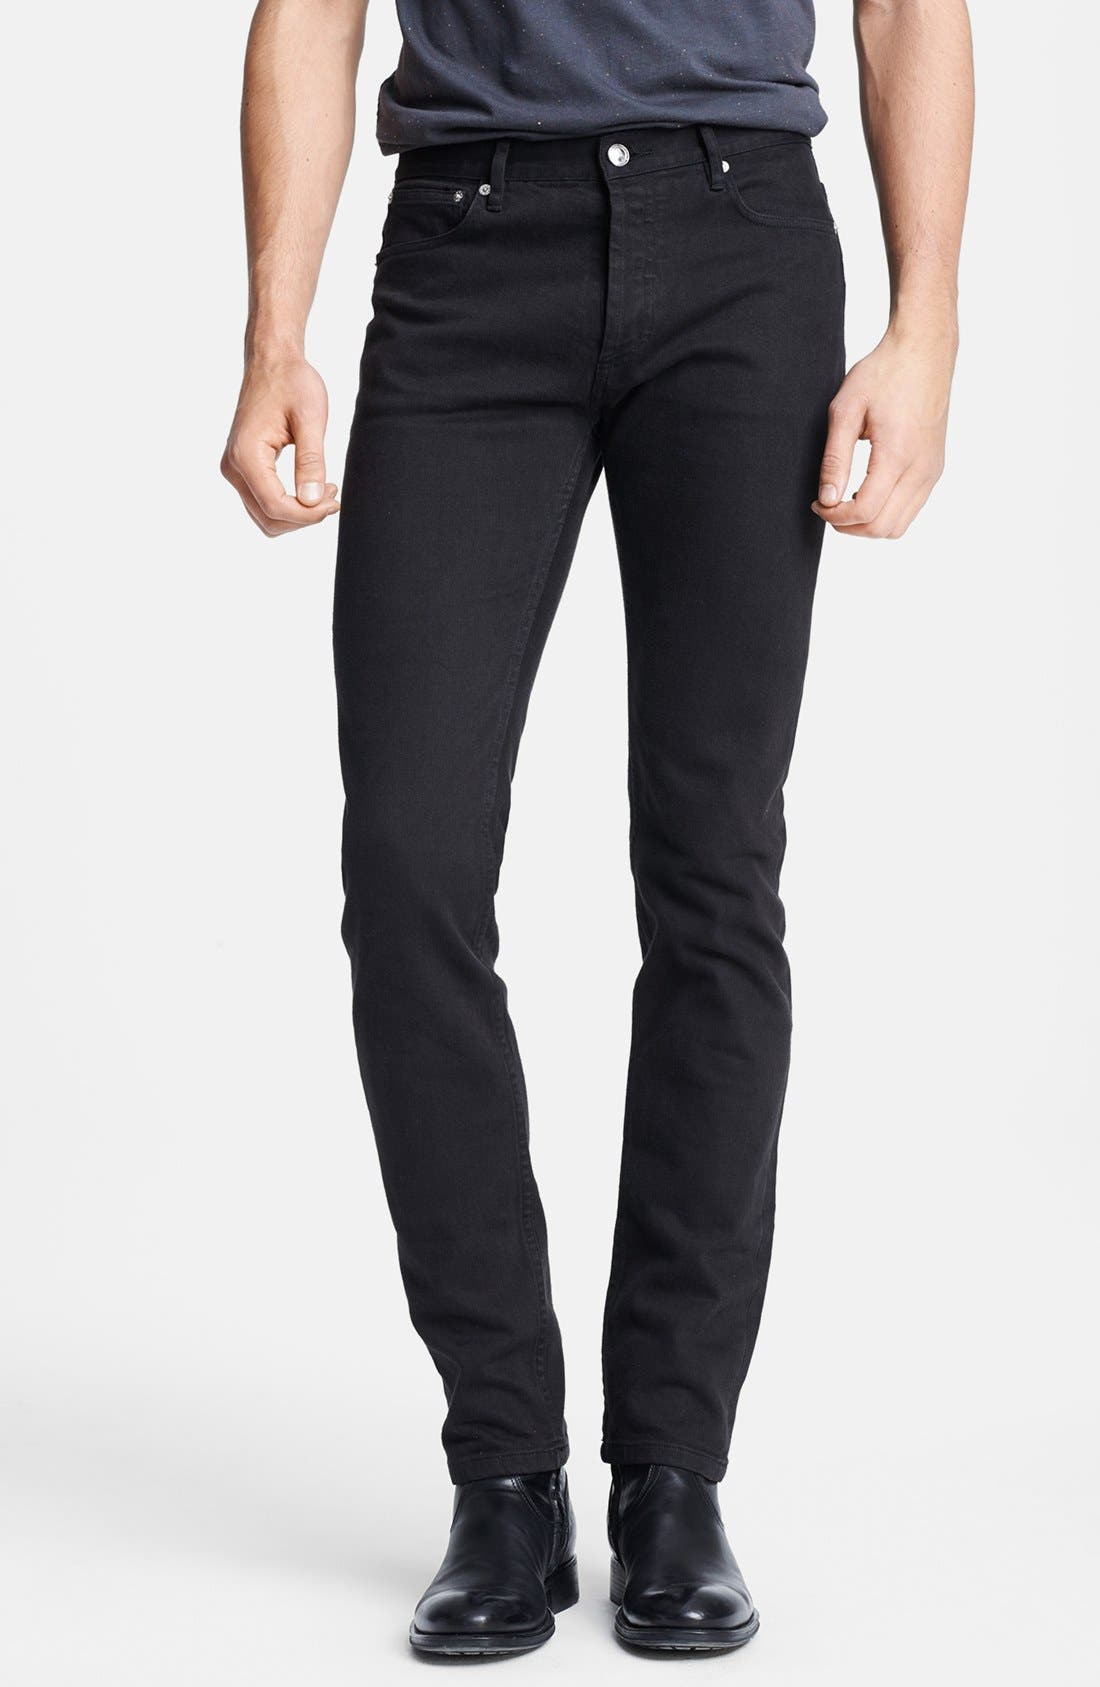 Alternate Image 1 Selected - A.P.C. 'Petit Standard' Skinny Fit Jeans (Black)